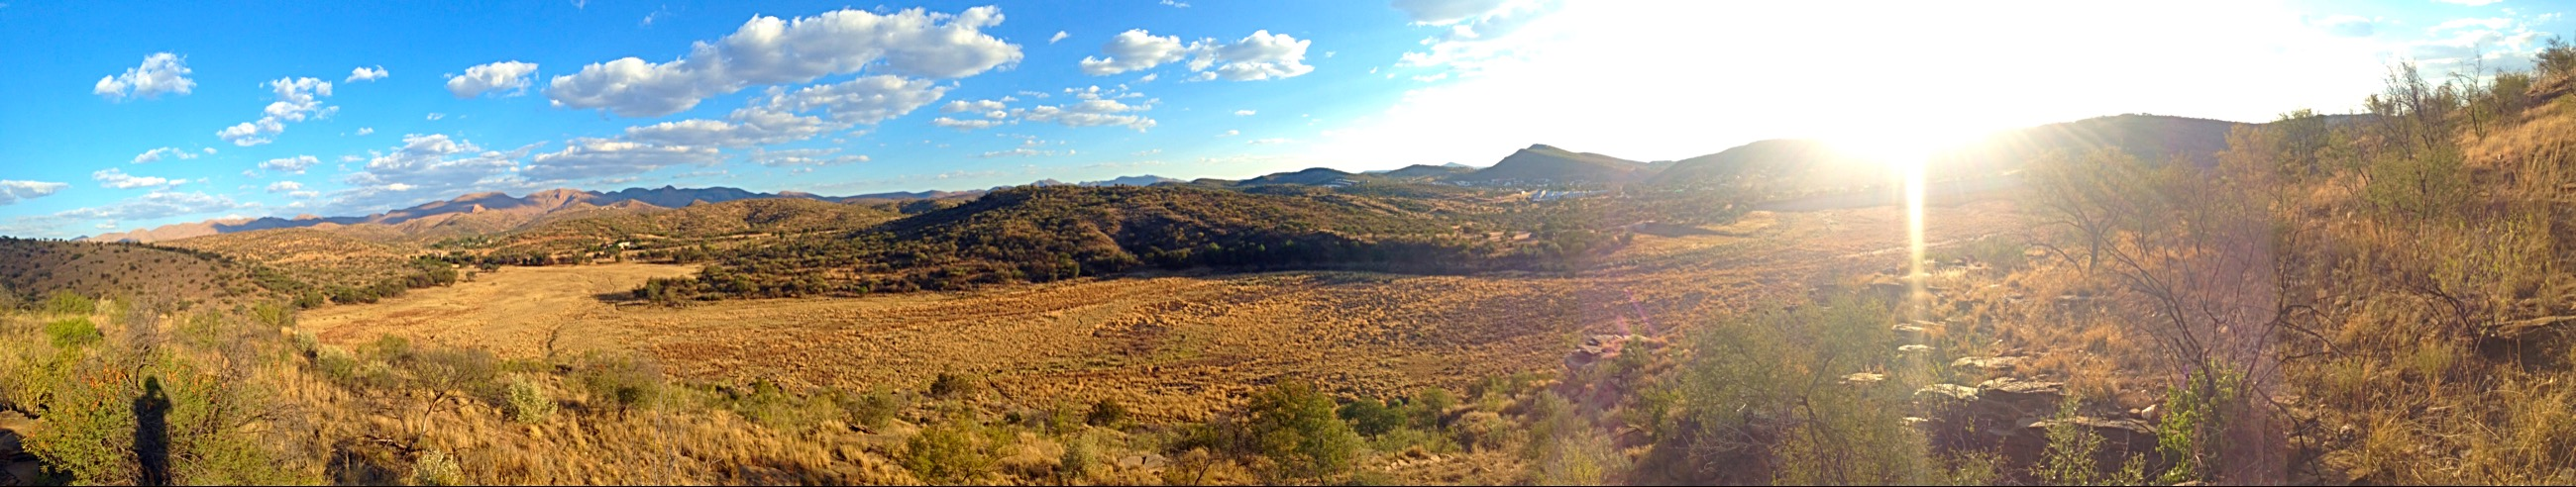 The hills around the Avis Dam in Windhoek from one of my last days in Namibia